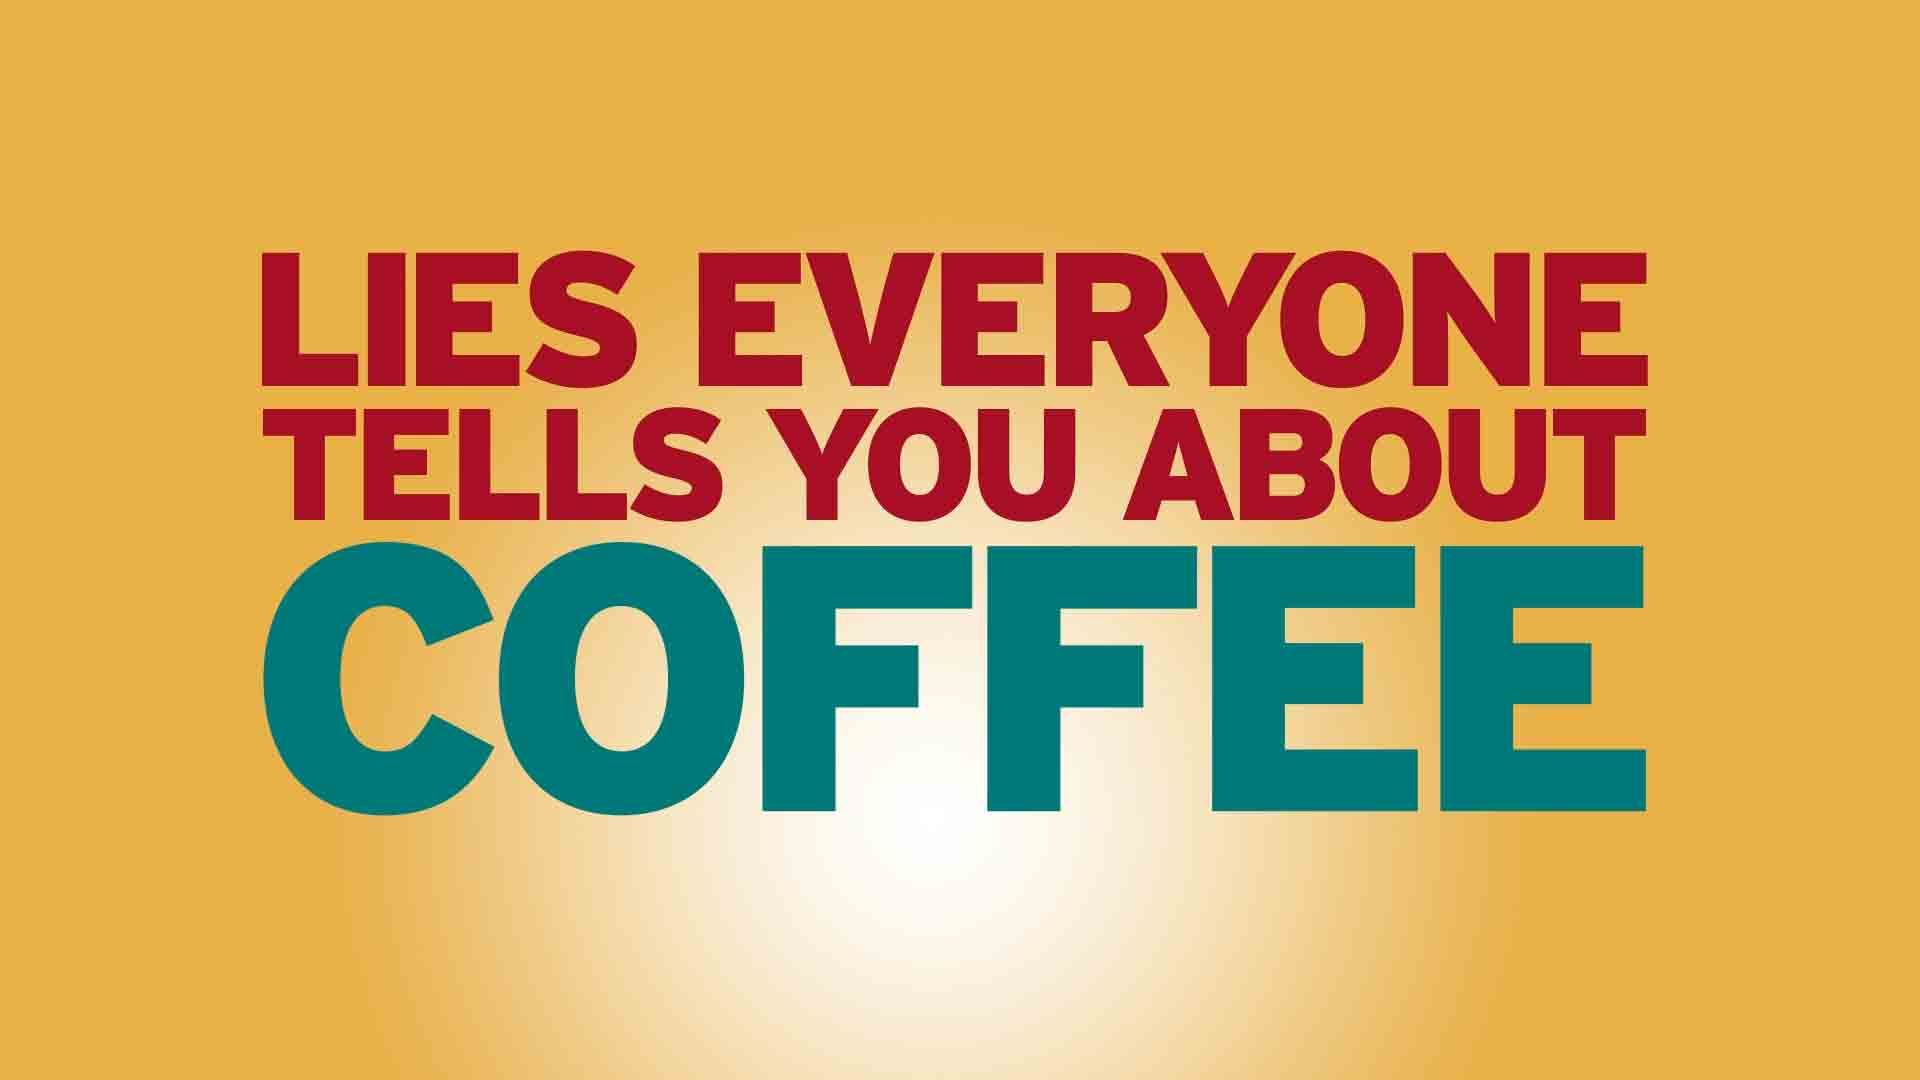 Lies Everyone Tells You About Coffee